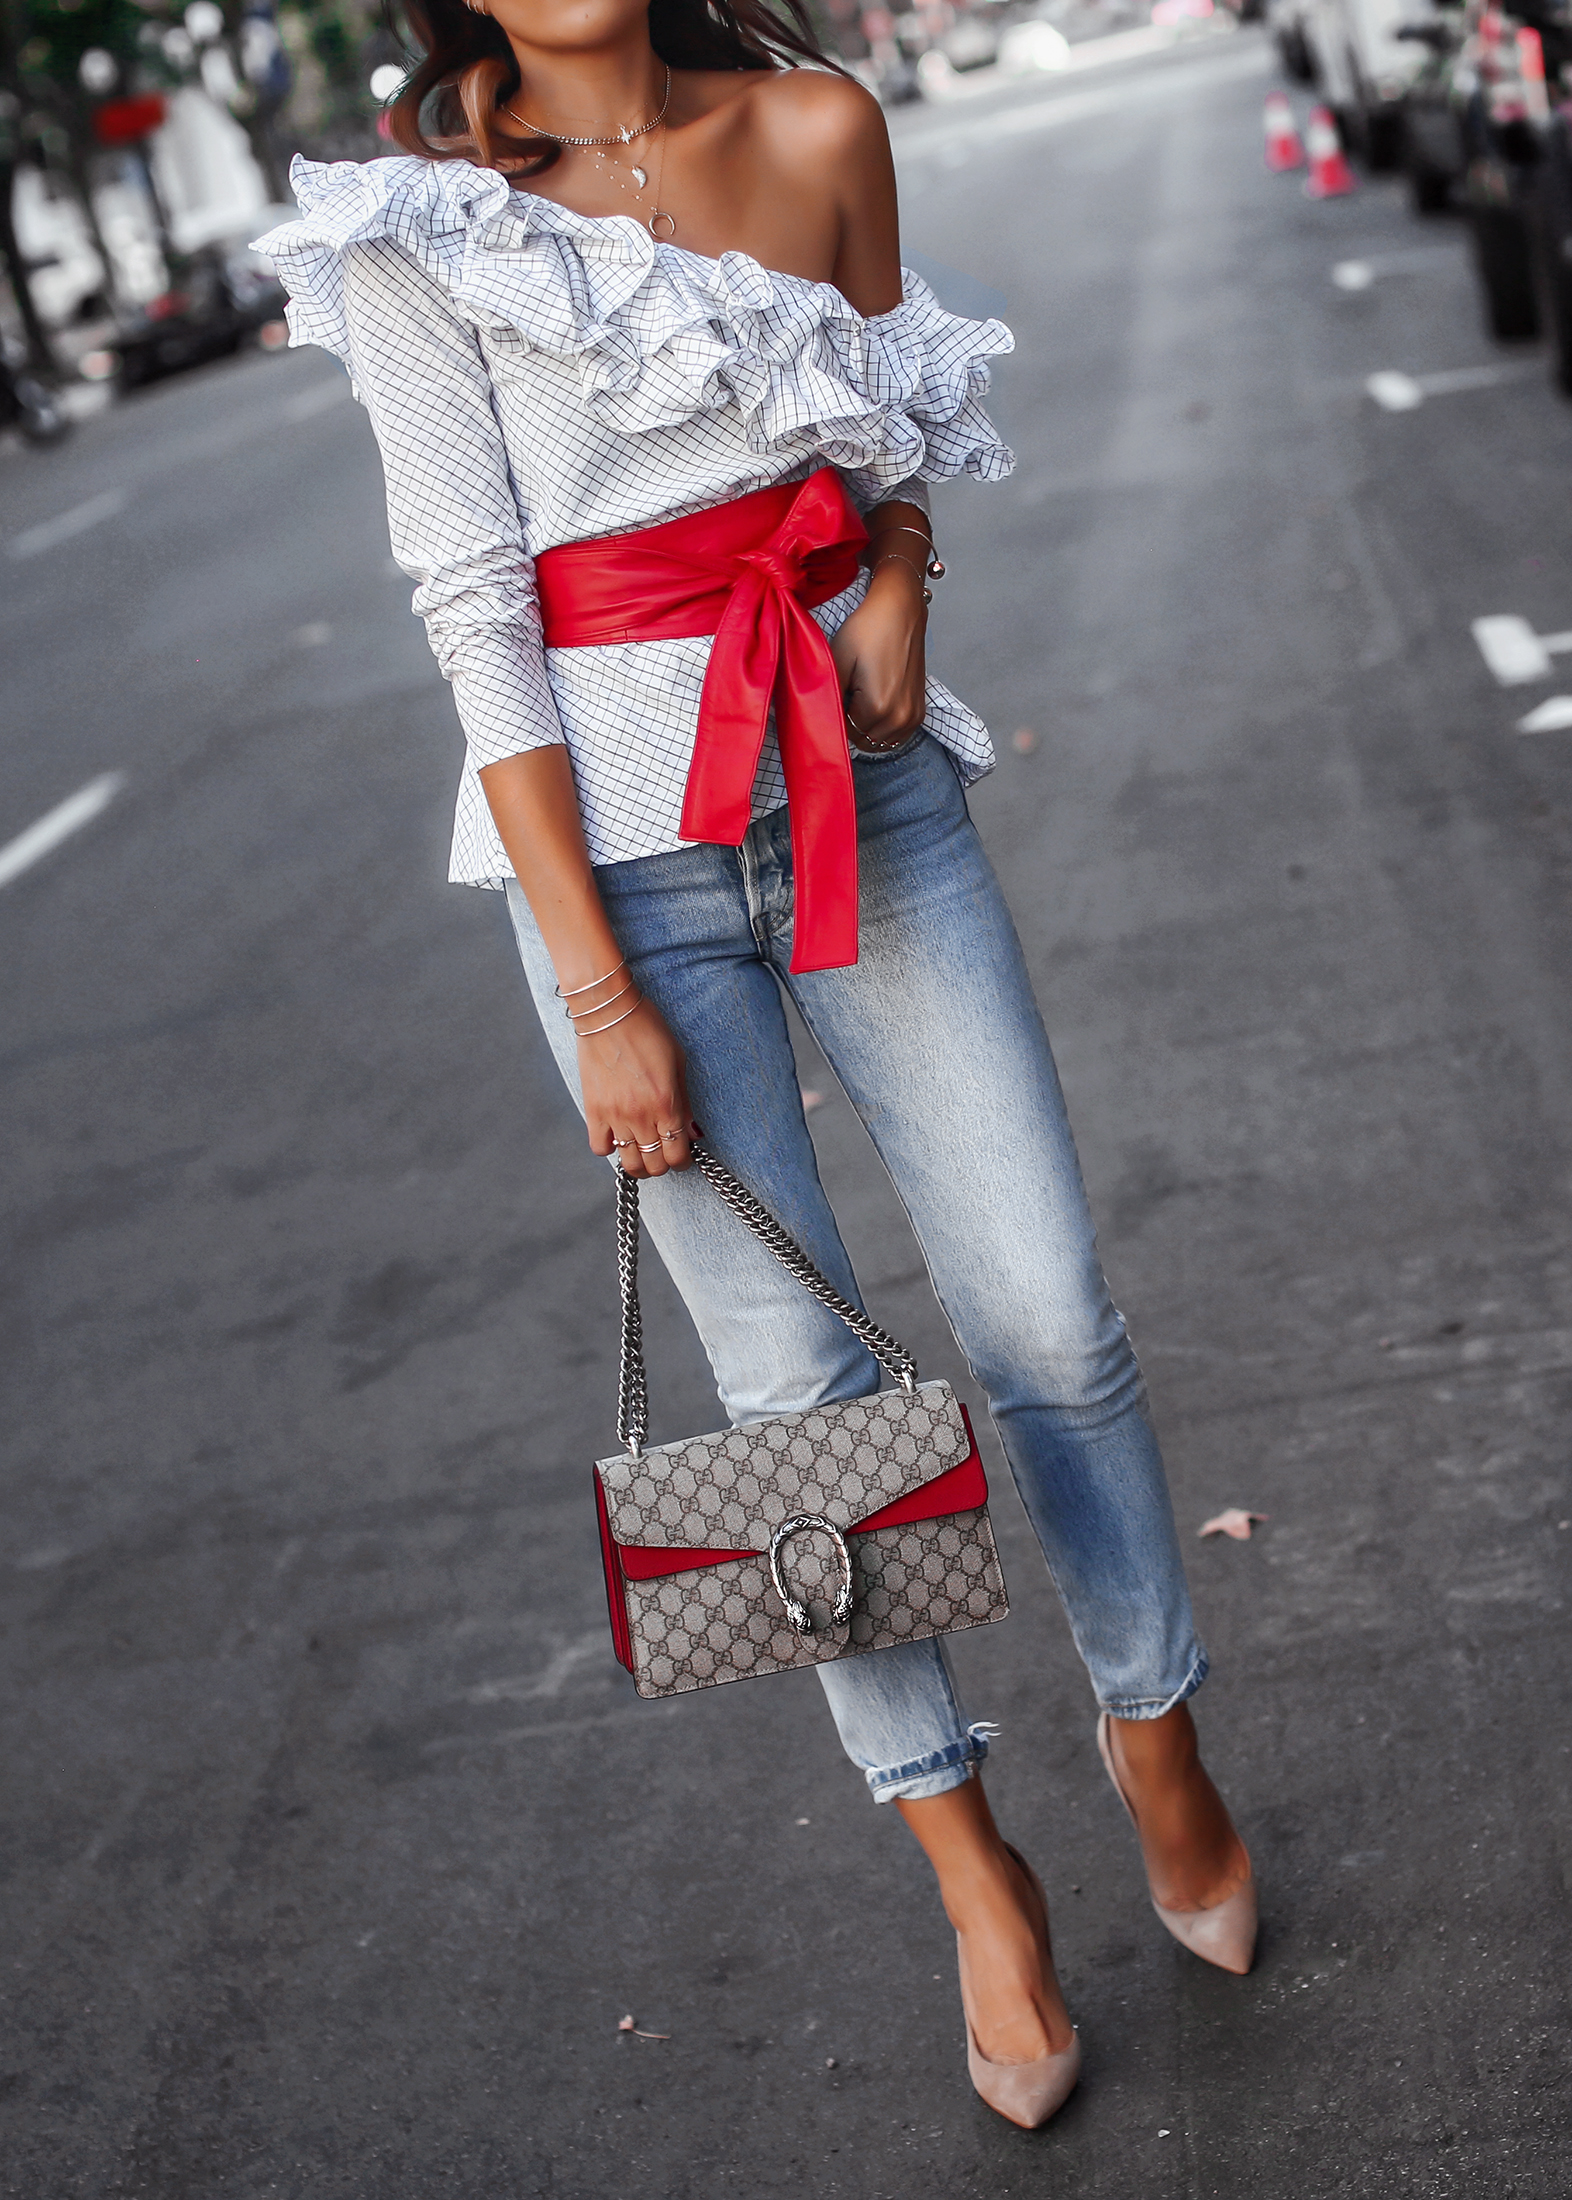 Brunette Woman Walking in Levis and One Shoulder Top